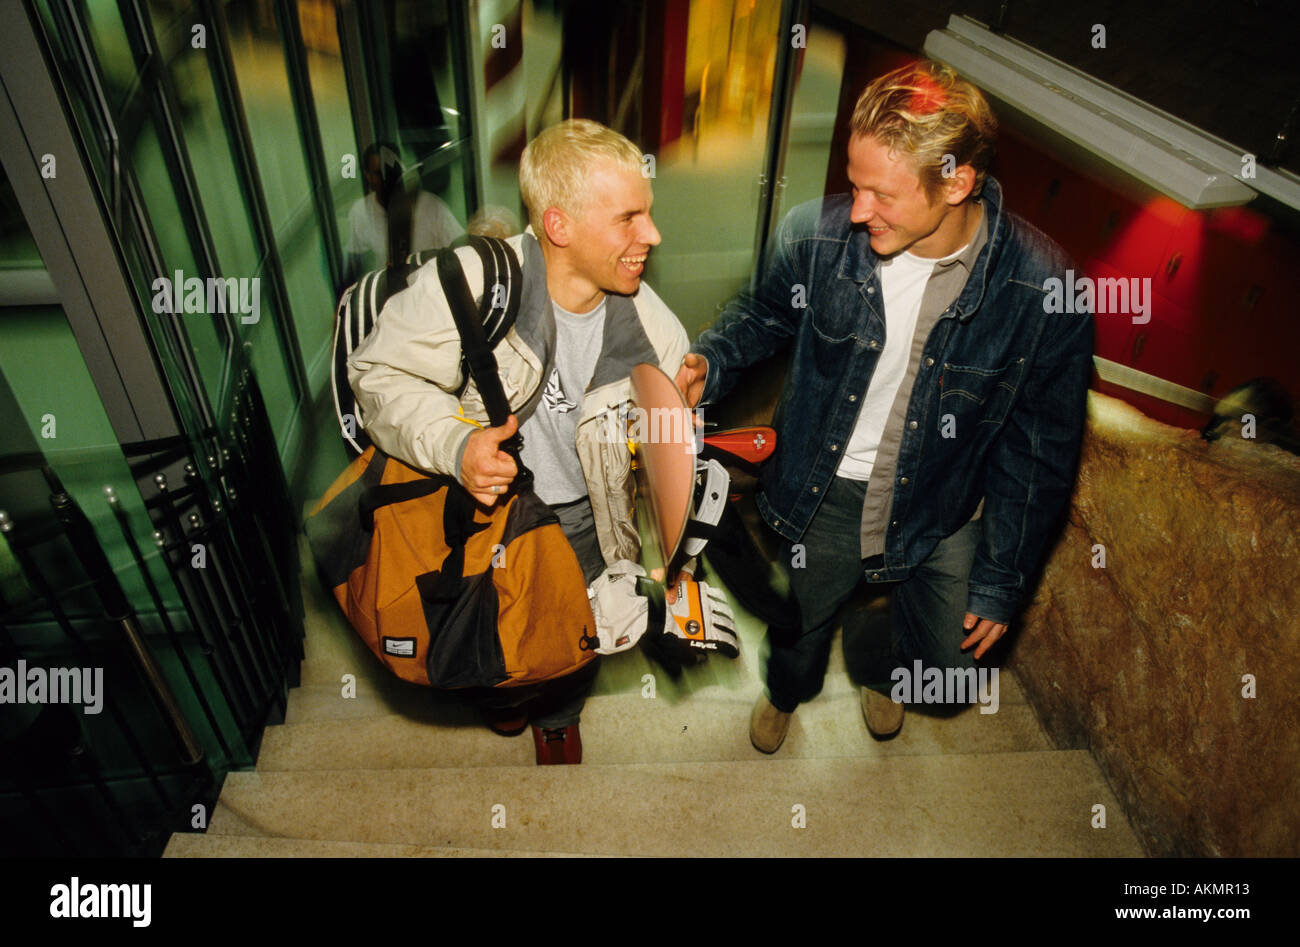 Germany Free time Two young men going up a staircase one of them is carriing a snowboard under his arm  - Stock Image